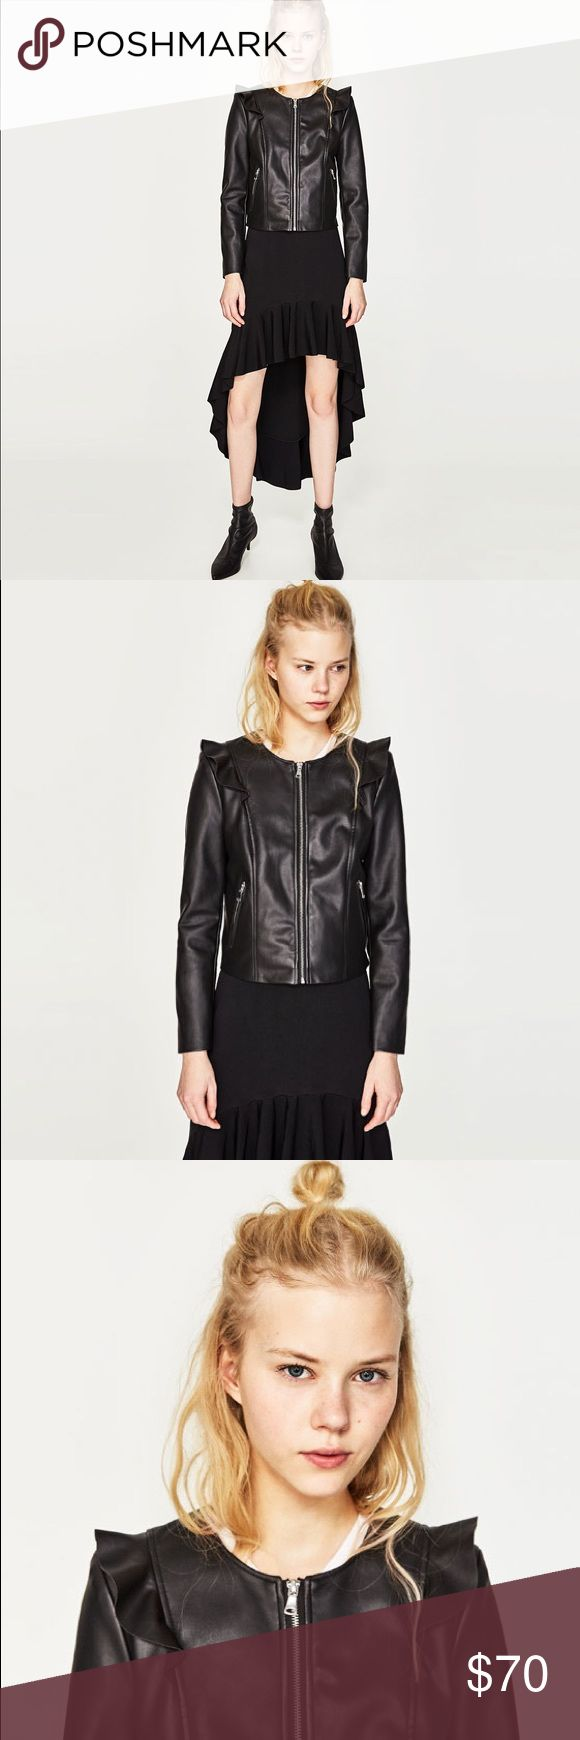 🆕🎉Black Faux Leather With Frills Jacket Super unique and trendy Faux leather jack by Zara. Look amazing in this jacket. Add a statement piece to your outfit with this beautiful and great quality jacket. Zara Jackets & Coats